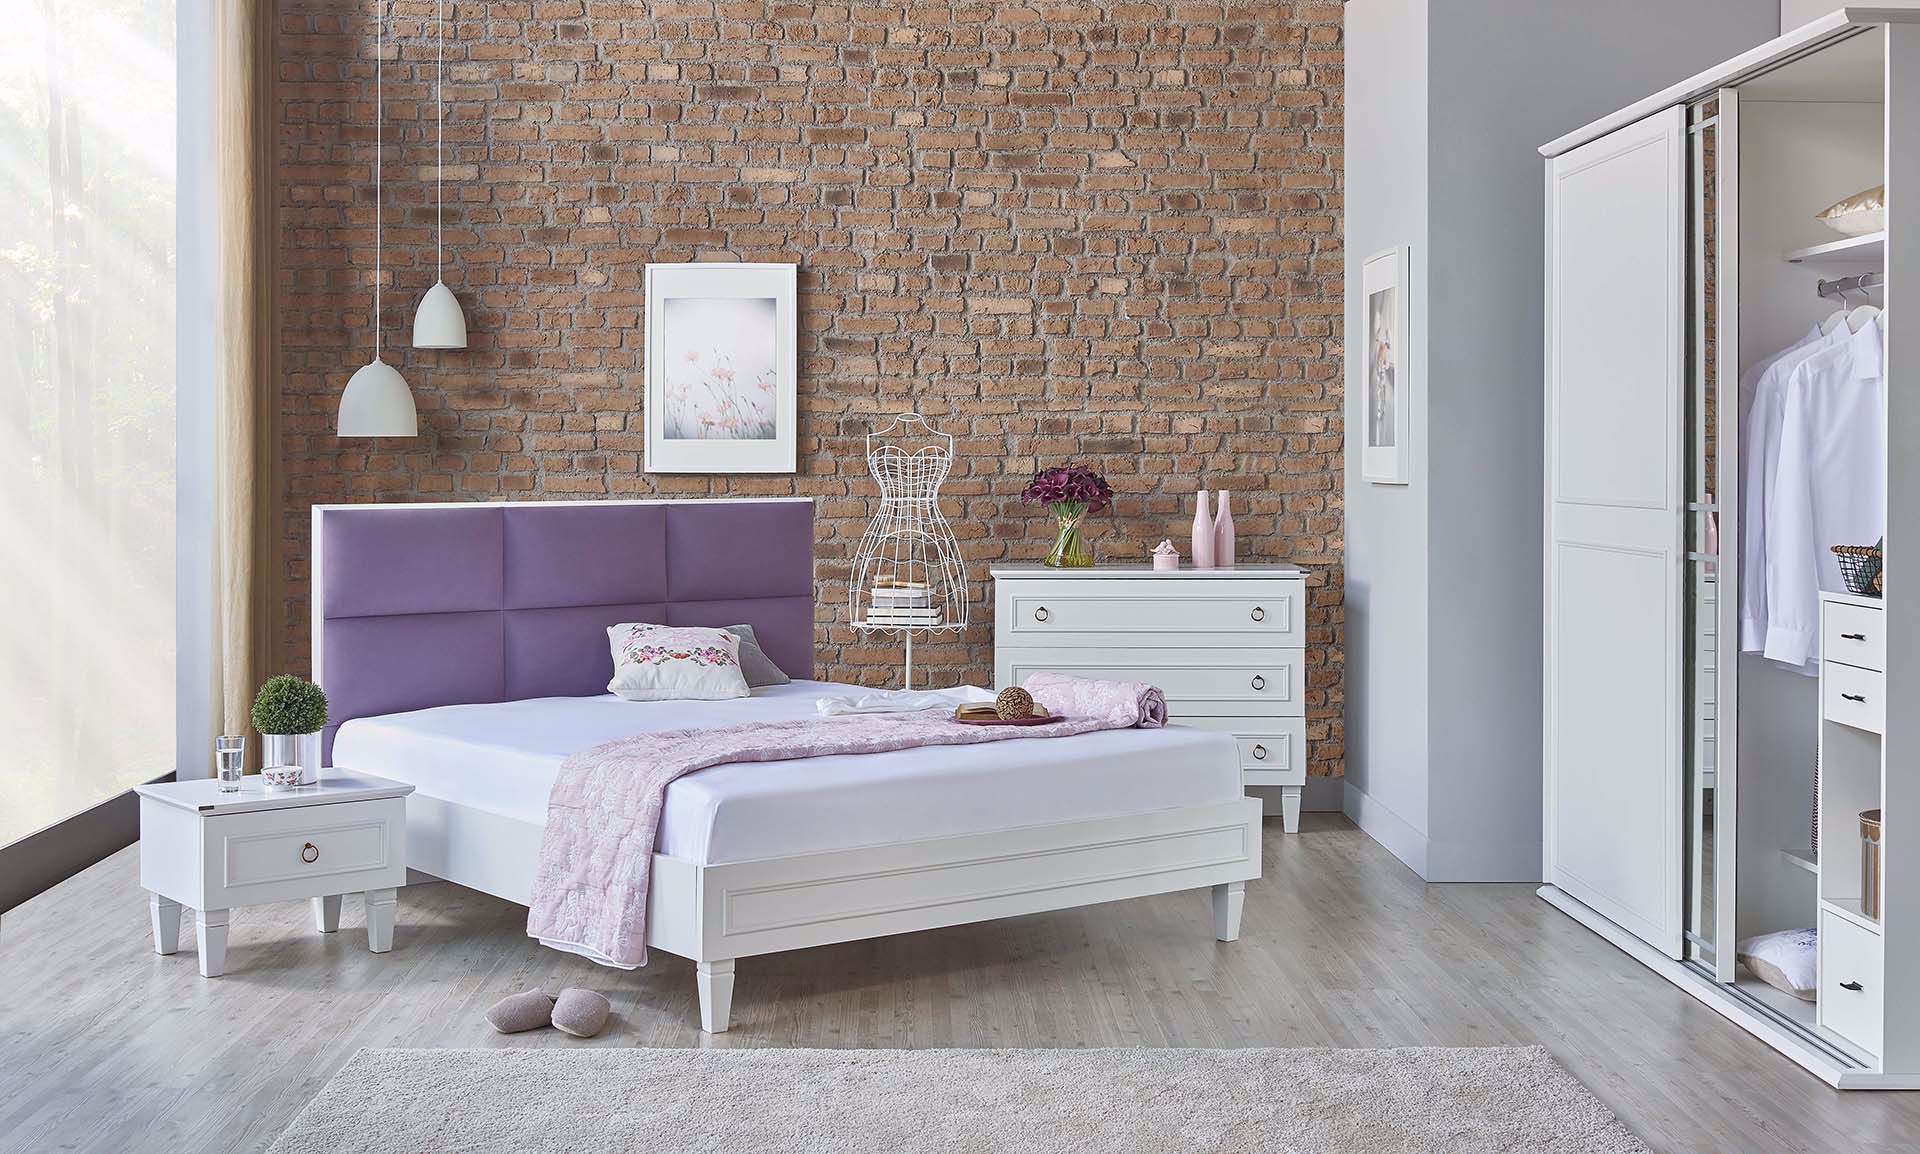 Cara Bedstead (with Base) 180*200cm (Incl. Headboard) (Purple)